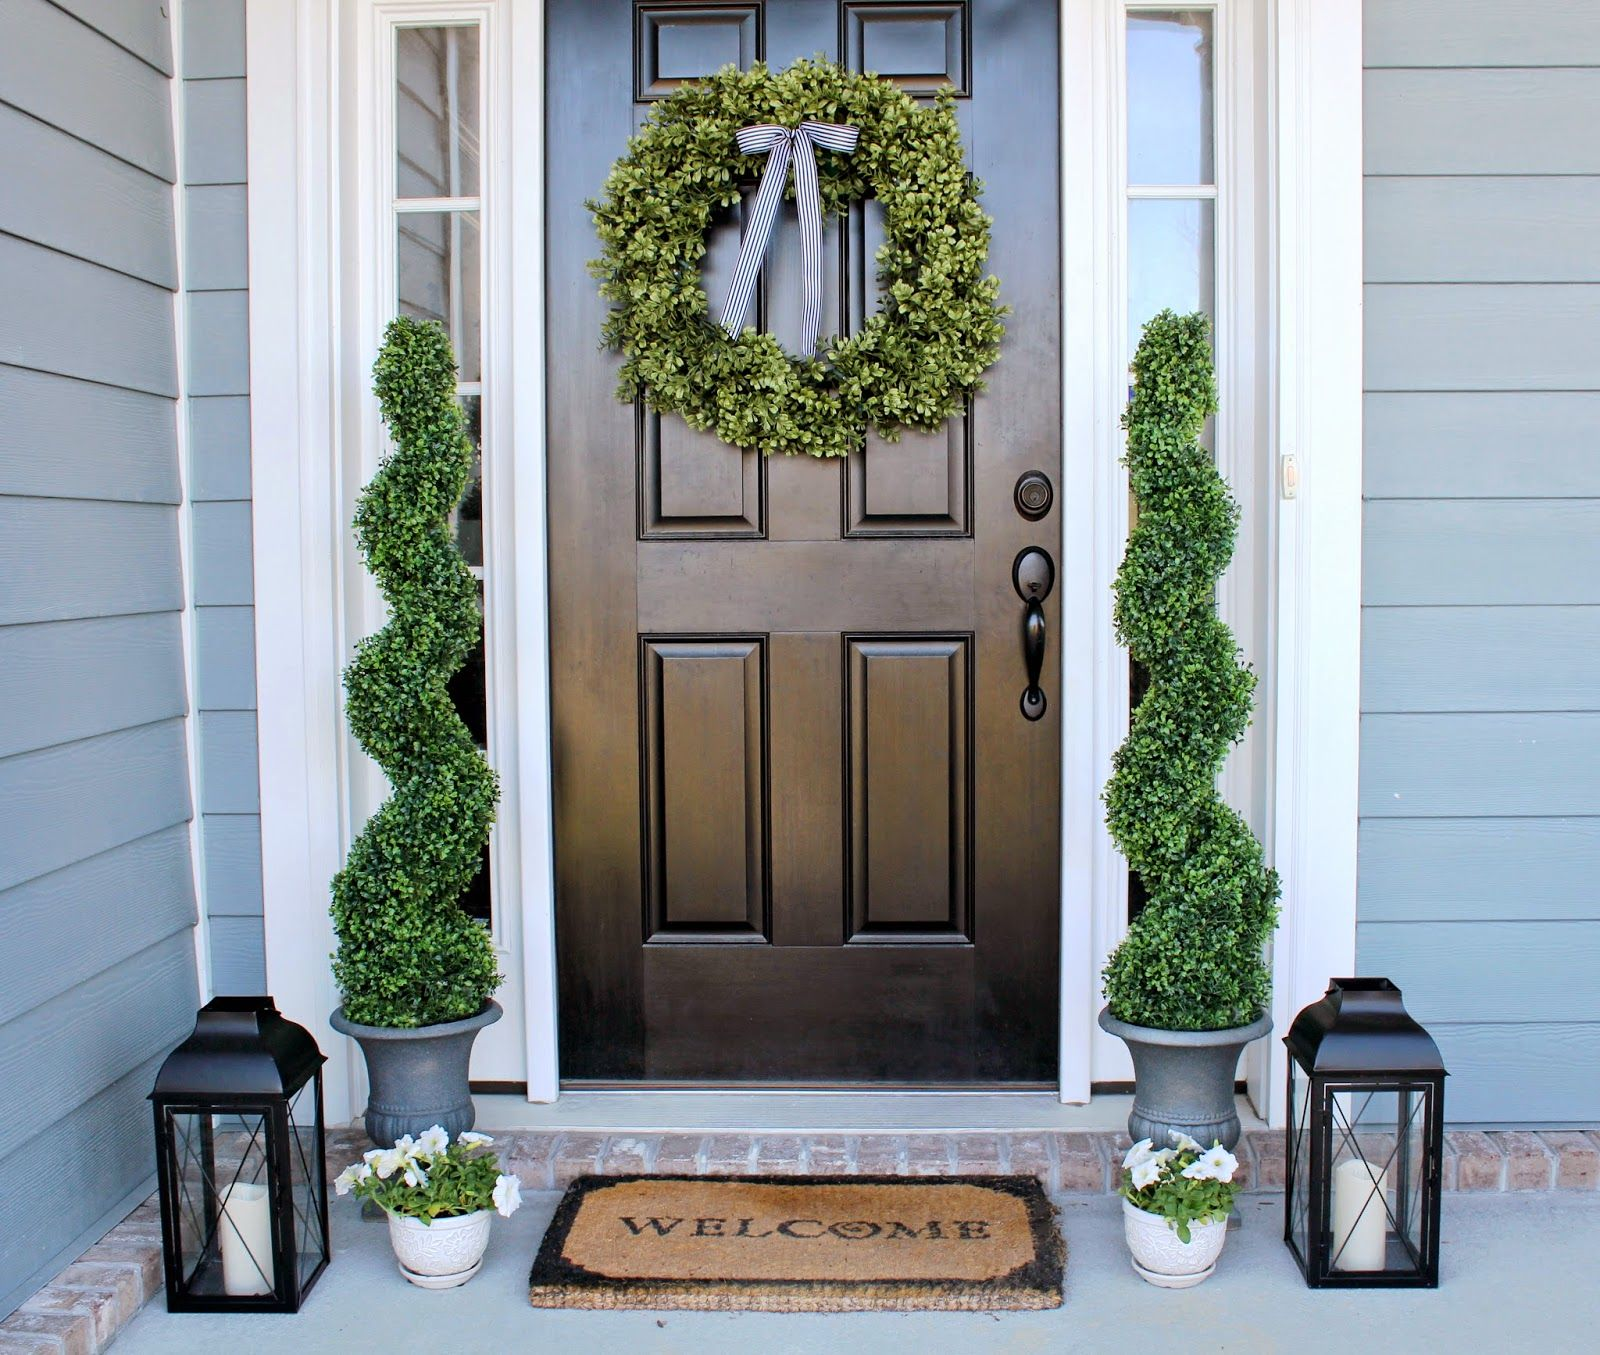 20 Pretty Topiaries for the Front Porch - The Craft Patch  Porch